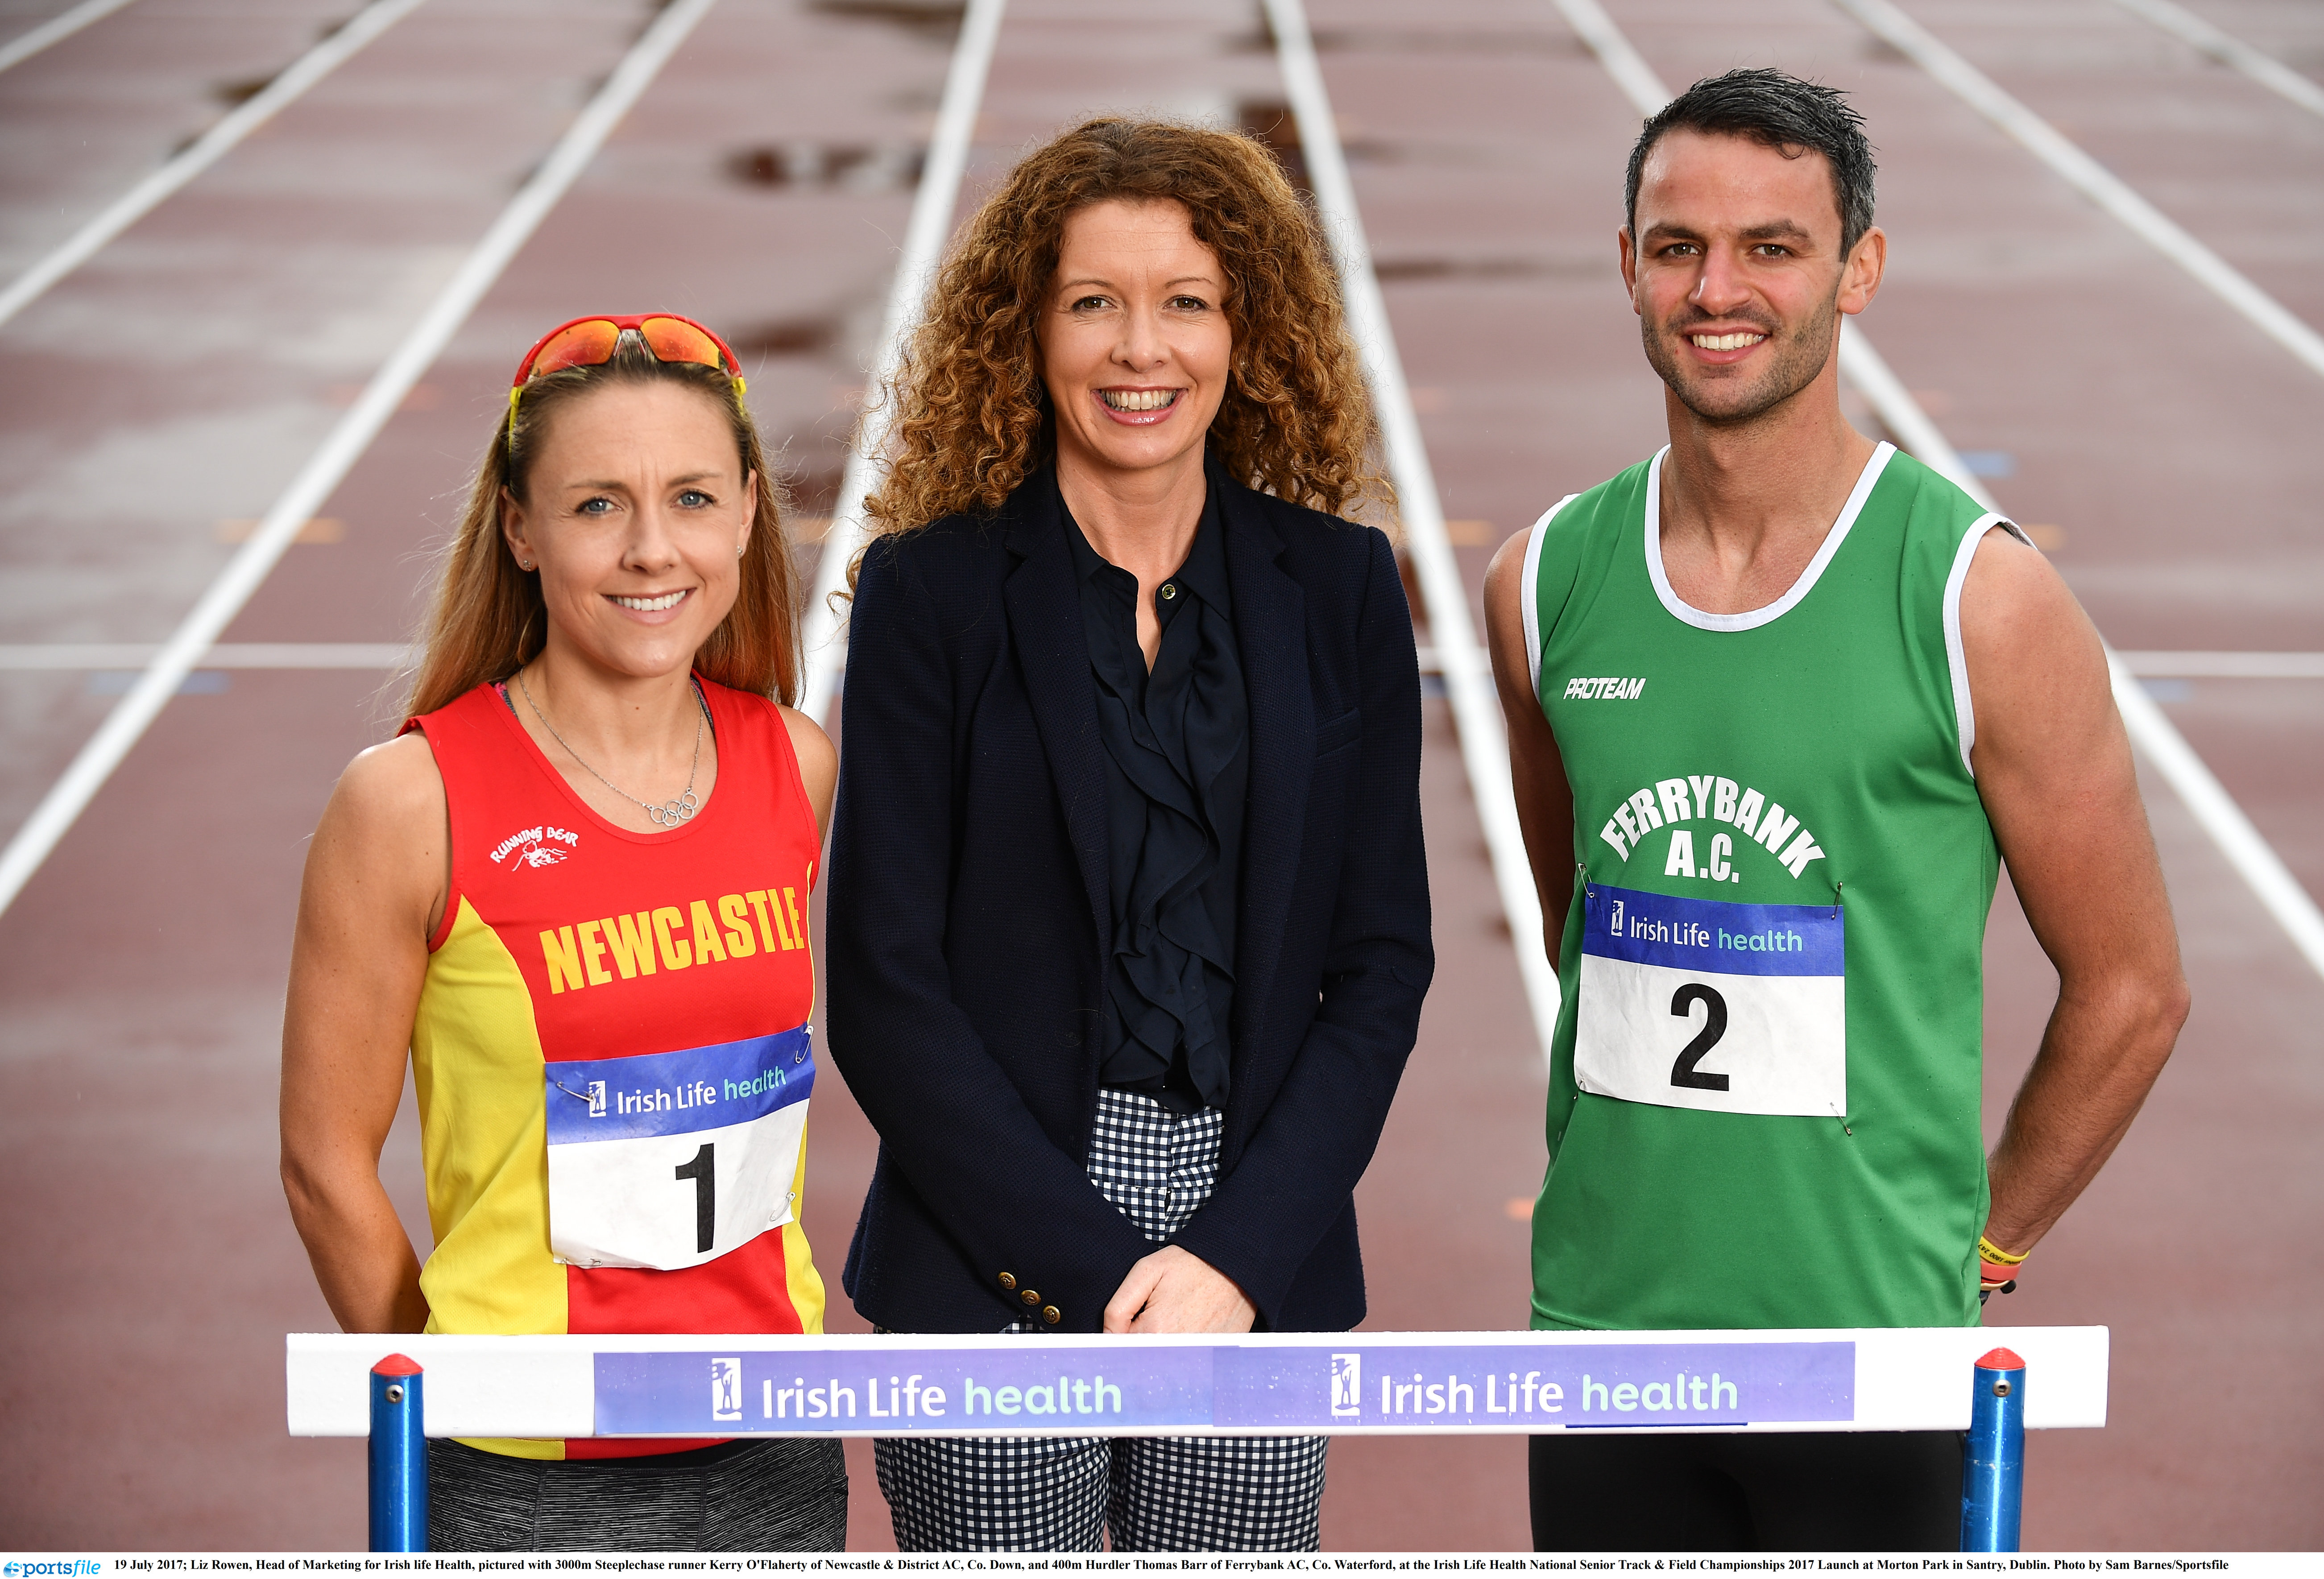 Barr & O'Flaherty launch Irish Life Health National Senior Track & Field Championships